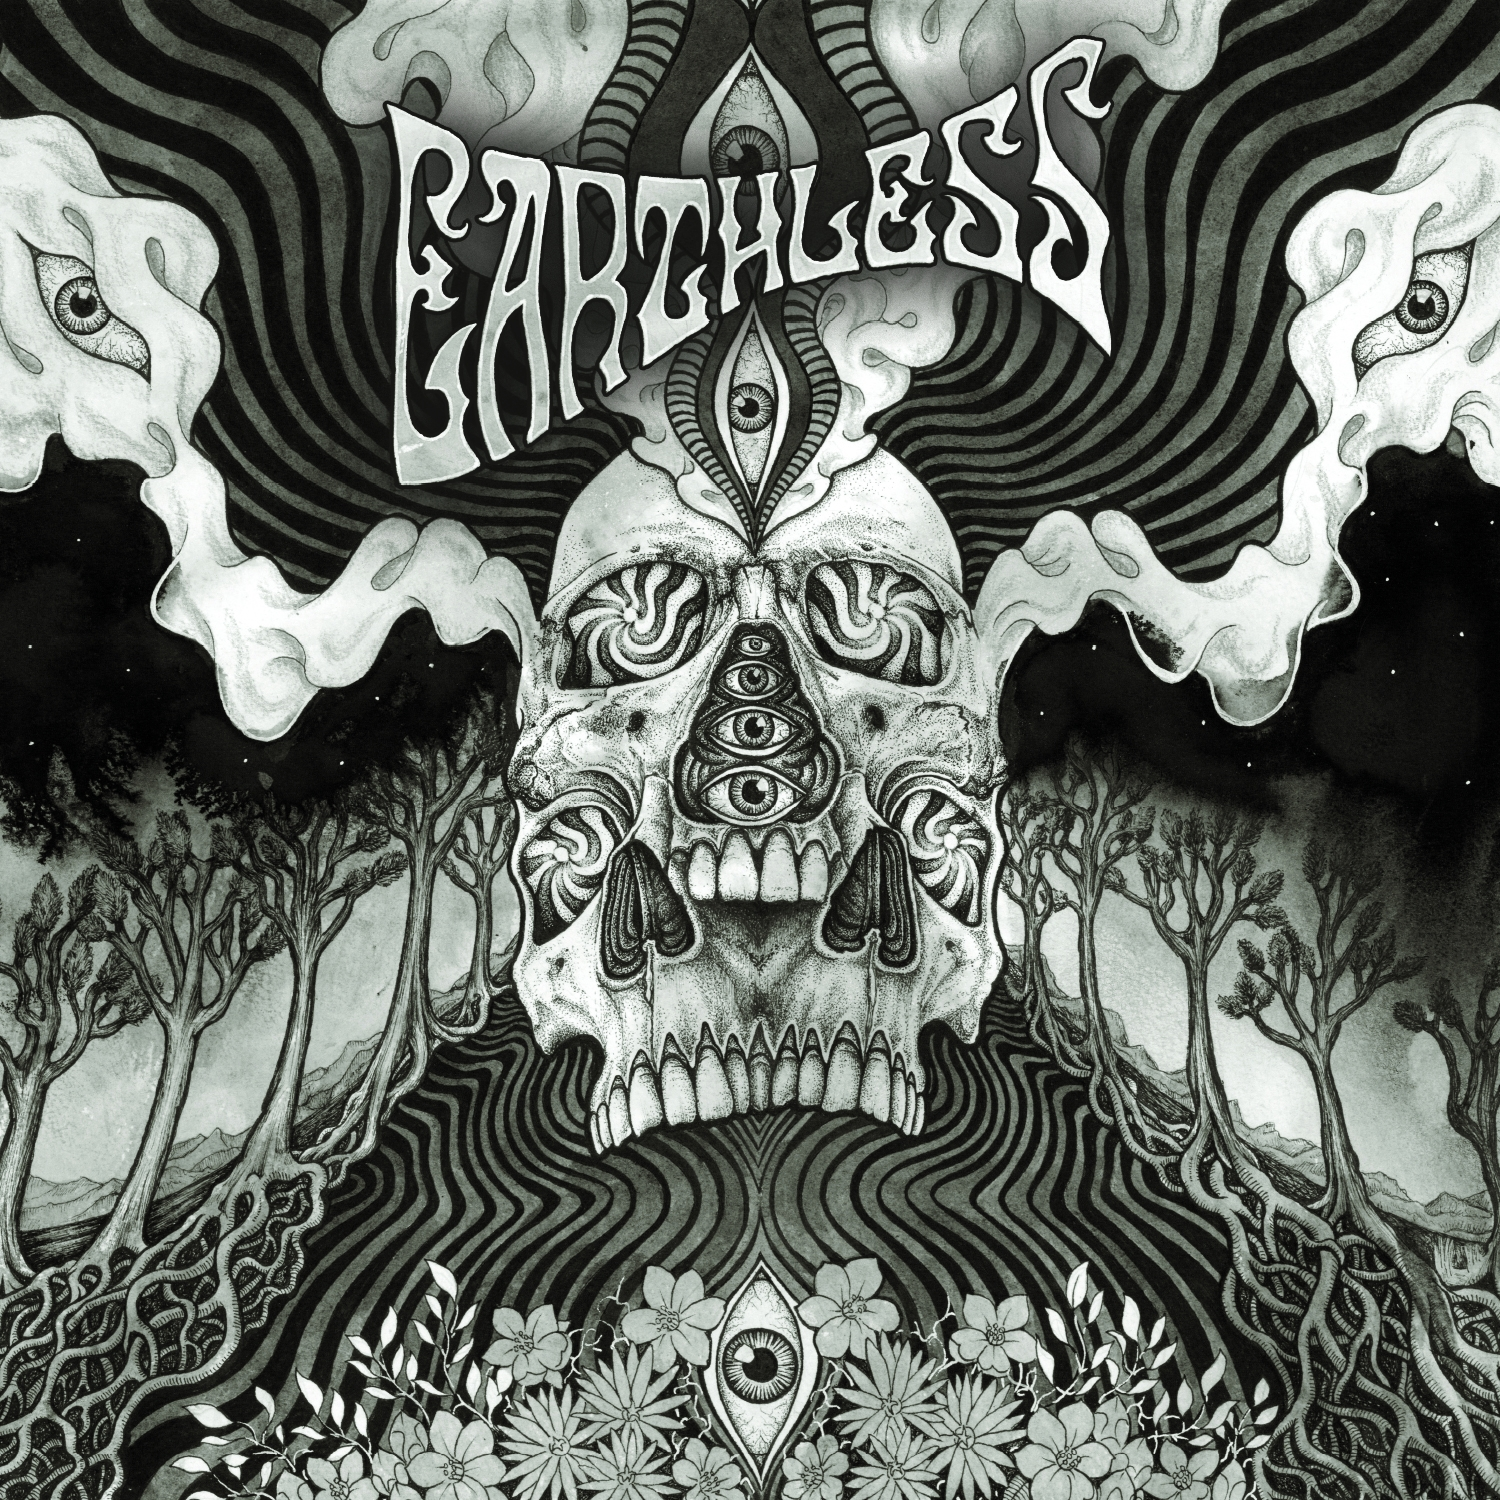 earthless-black-heaven-artwork.jpg